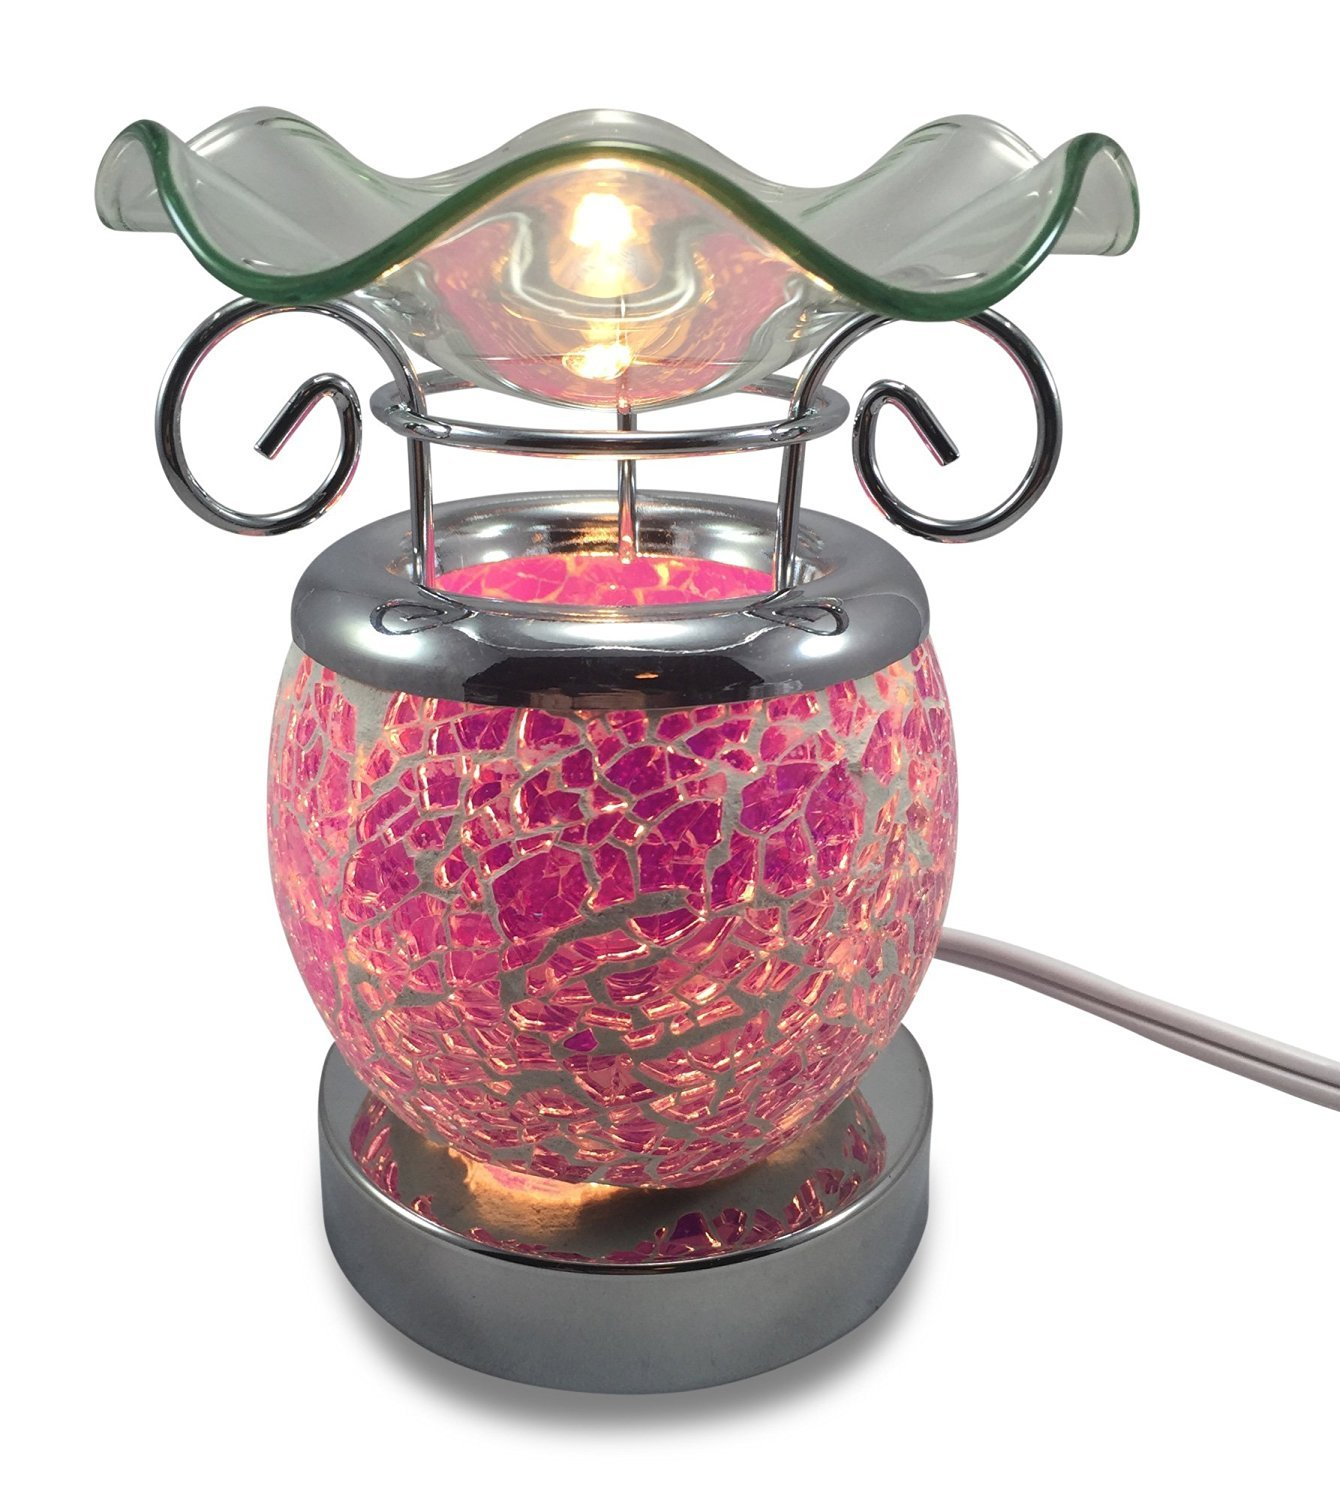 Decorative Touch Sensitive Mosaic Cracled Electric Plug-in Fragrance Lamp Aromatherapy Oil Warmer/Burner in Gift Box (White Glow) (Pink)